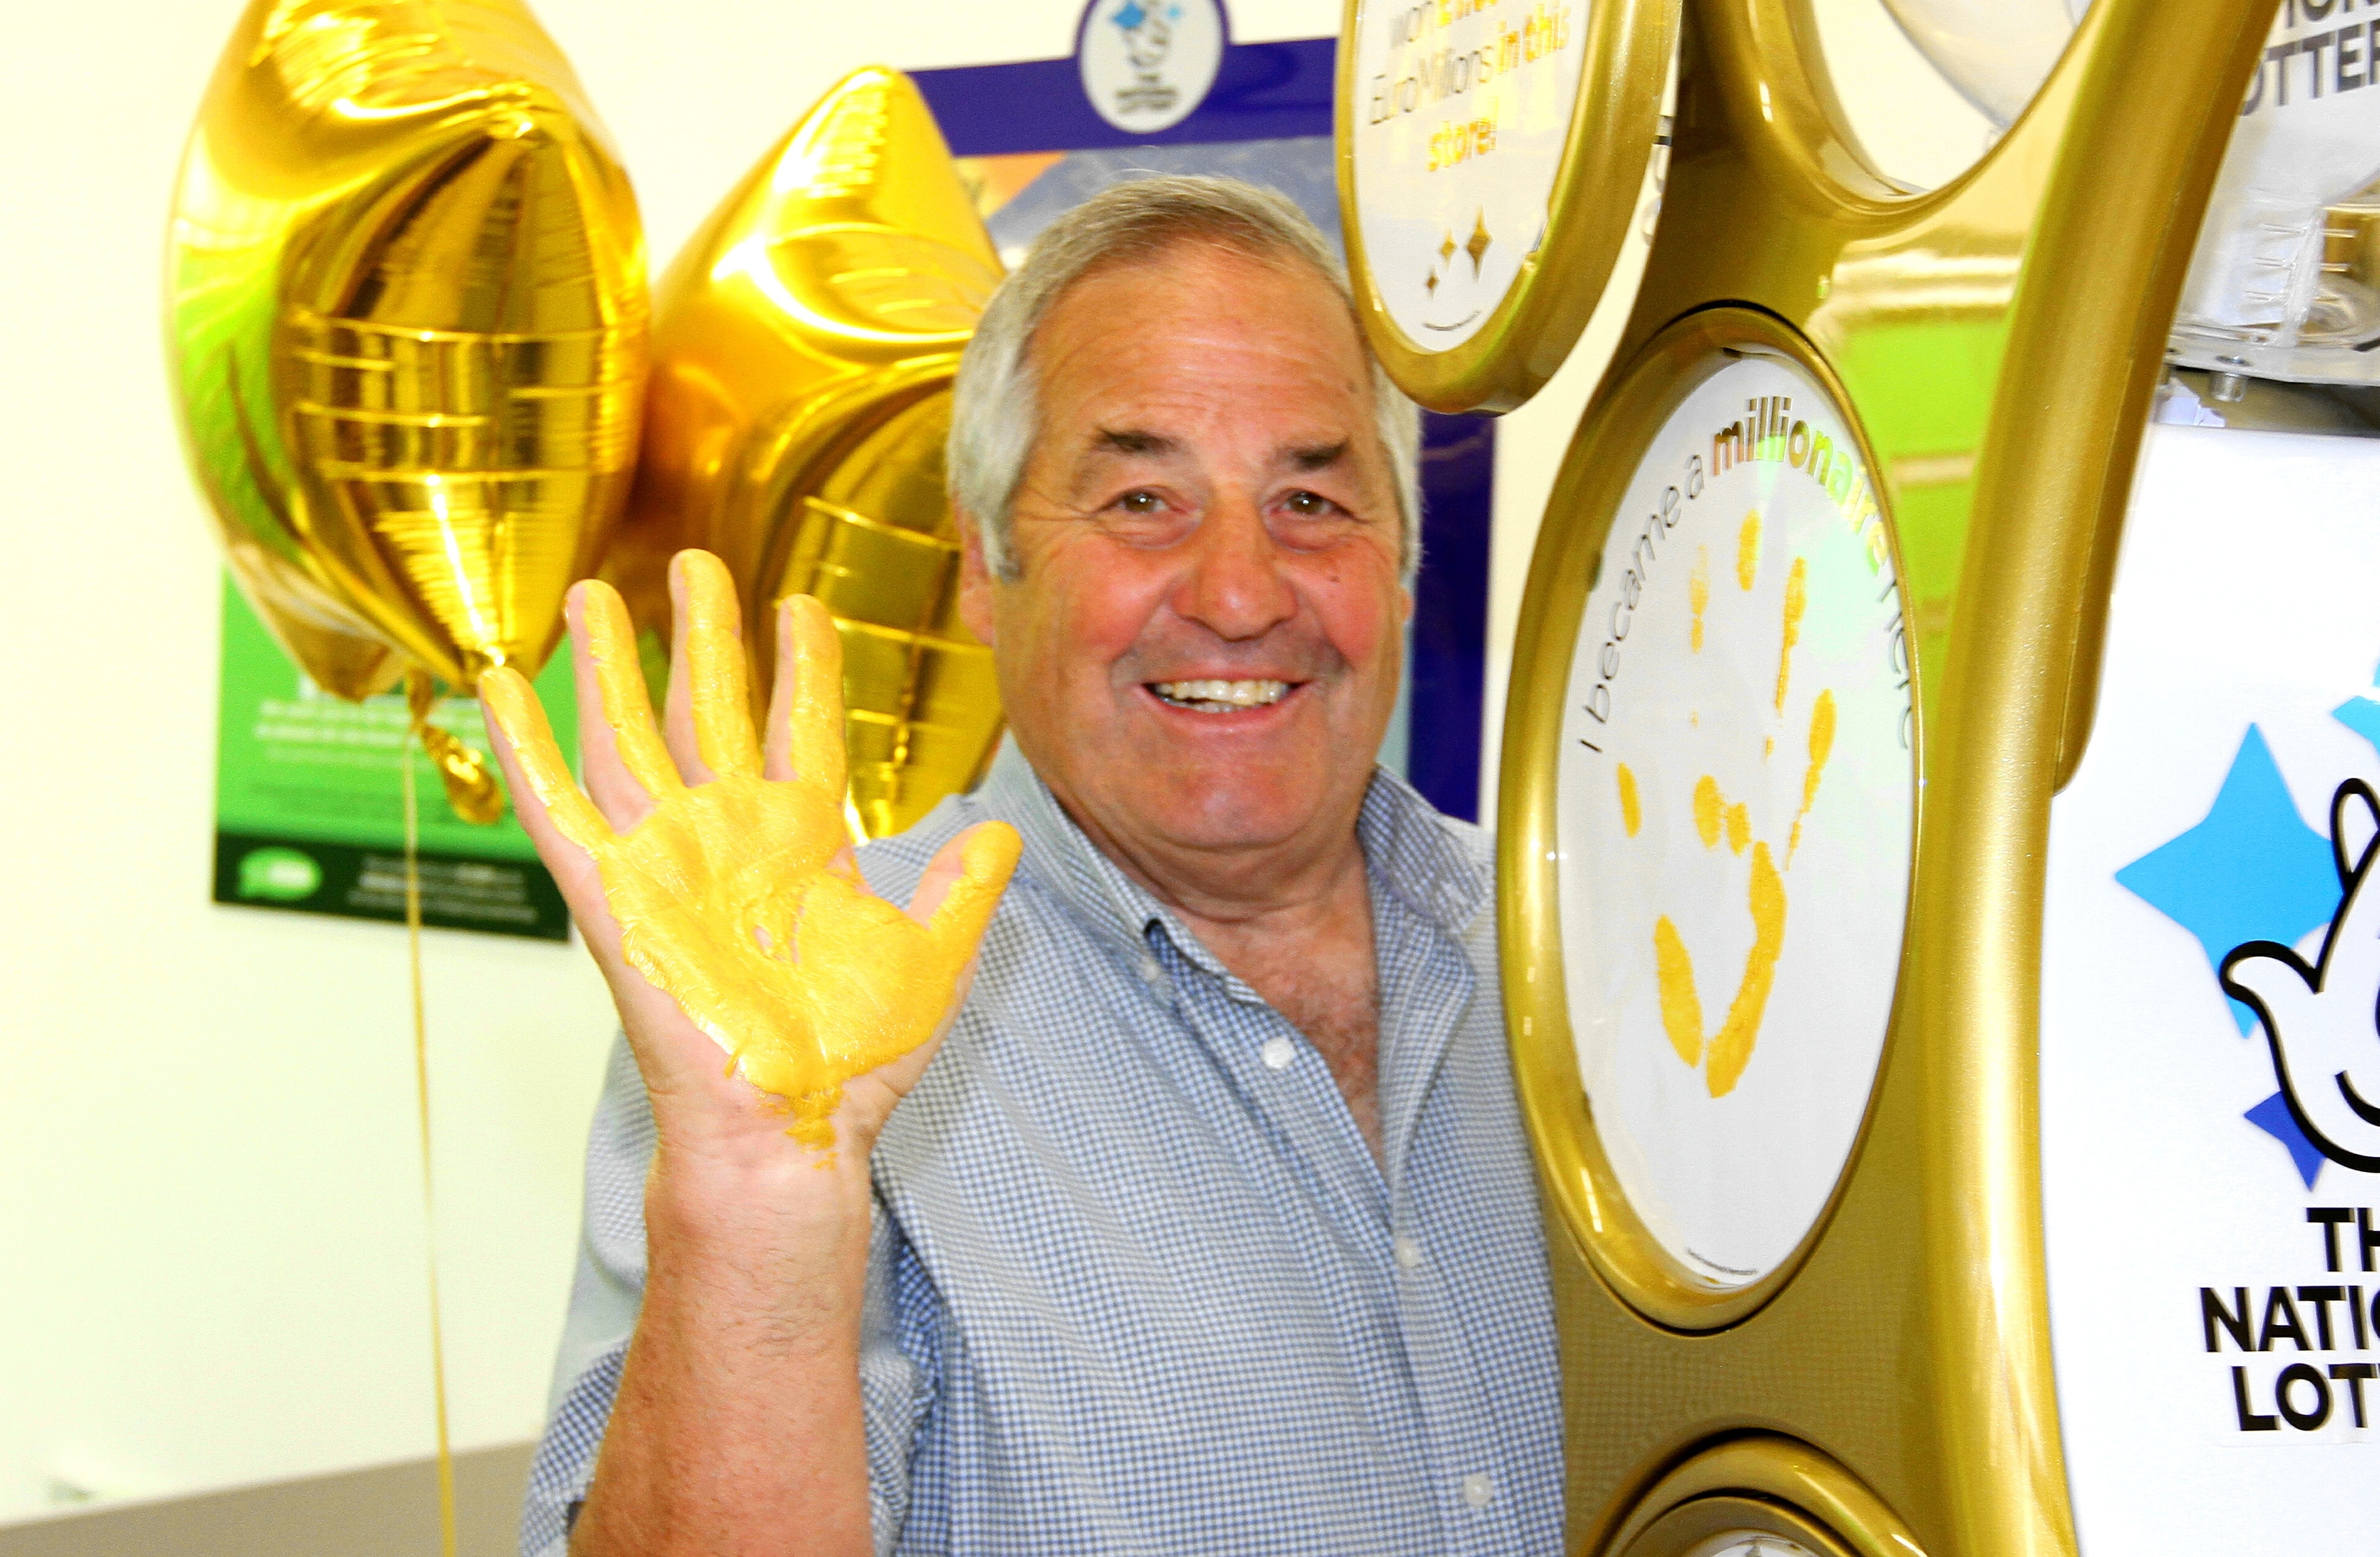 Lottery winner Raymond Storey was at Asda Myrekirk to launch the new gold playstation.